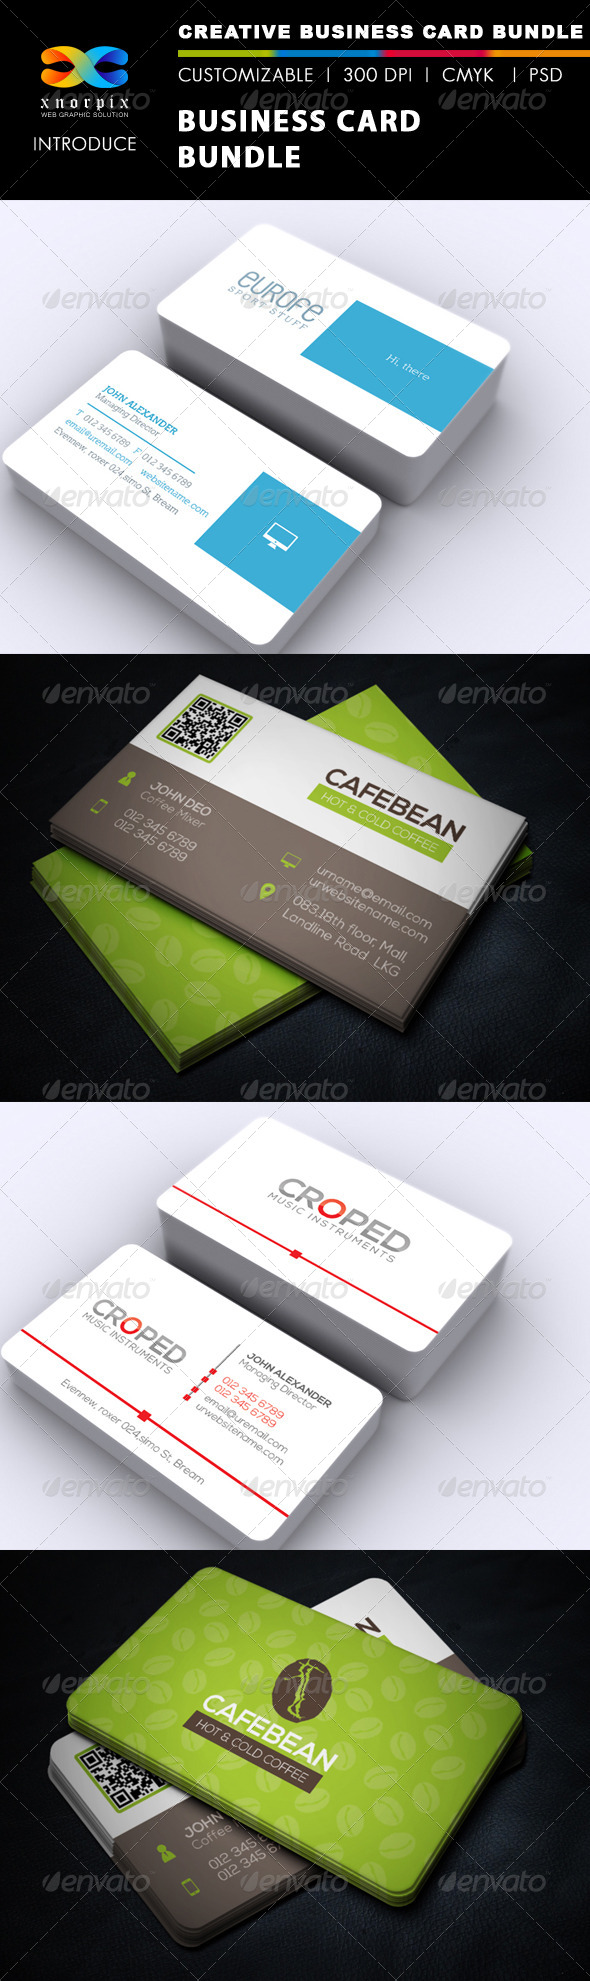 GraphicRiver Business Card Bundle 3 in 1-Vol 34 6772816